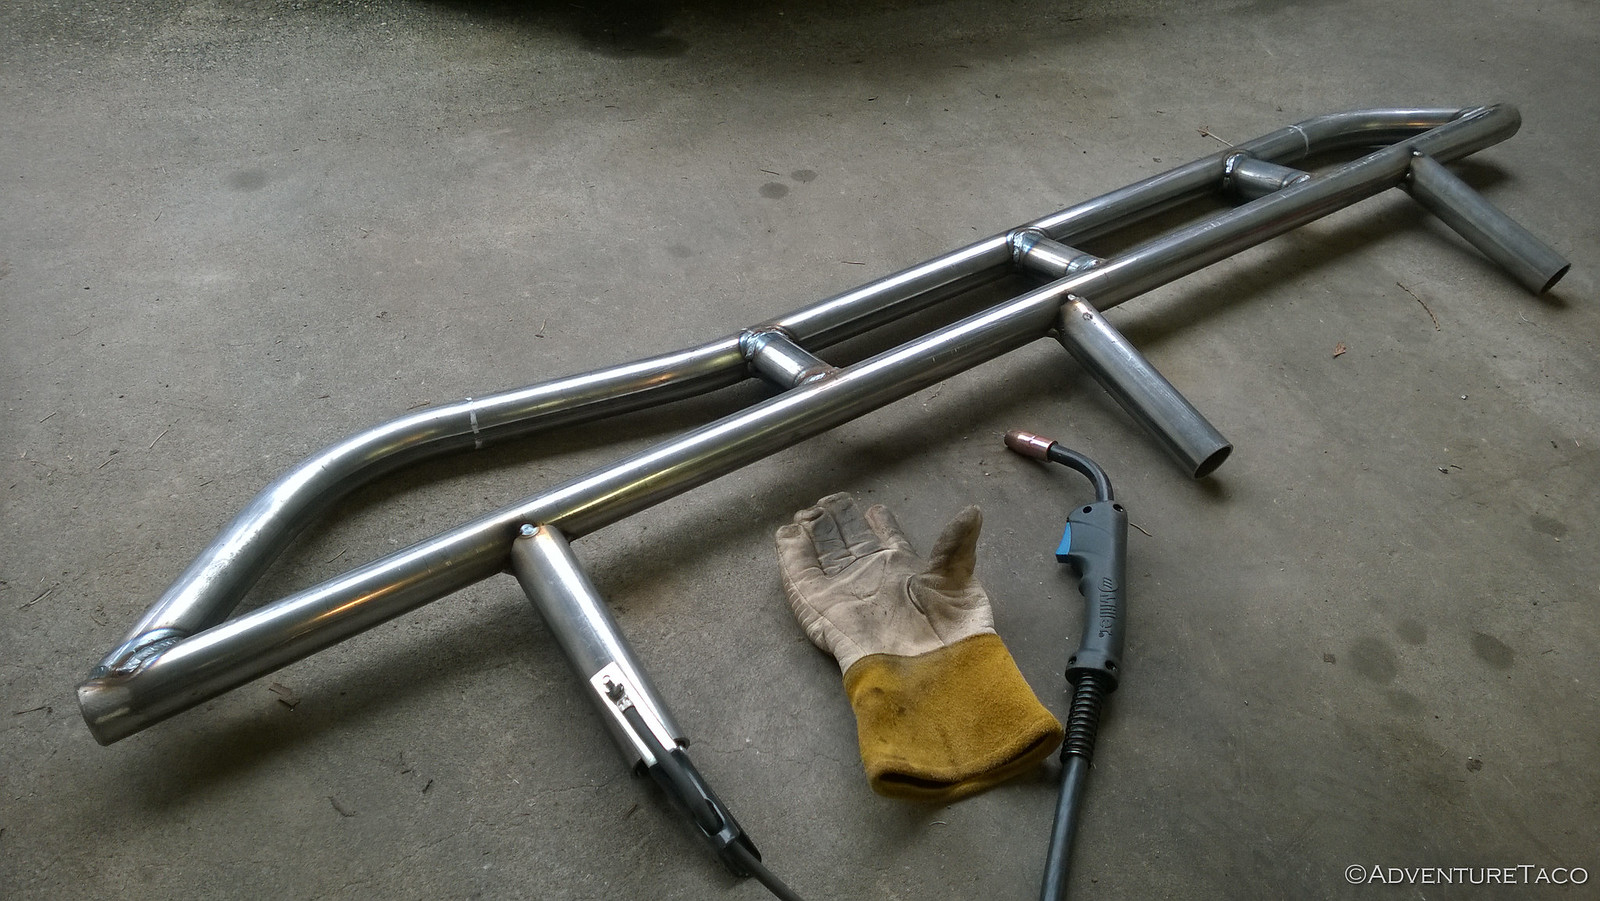 Fabricating Sliders for the 4Runner